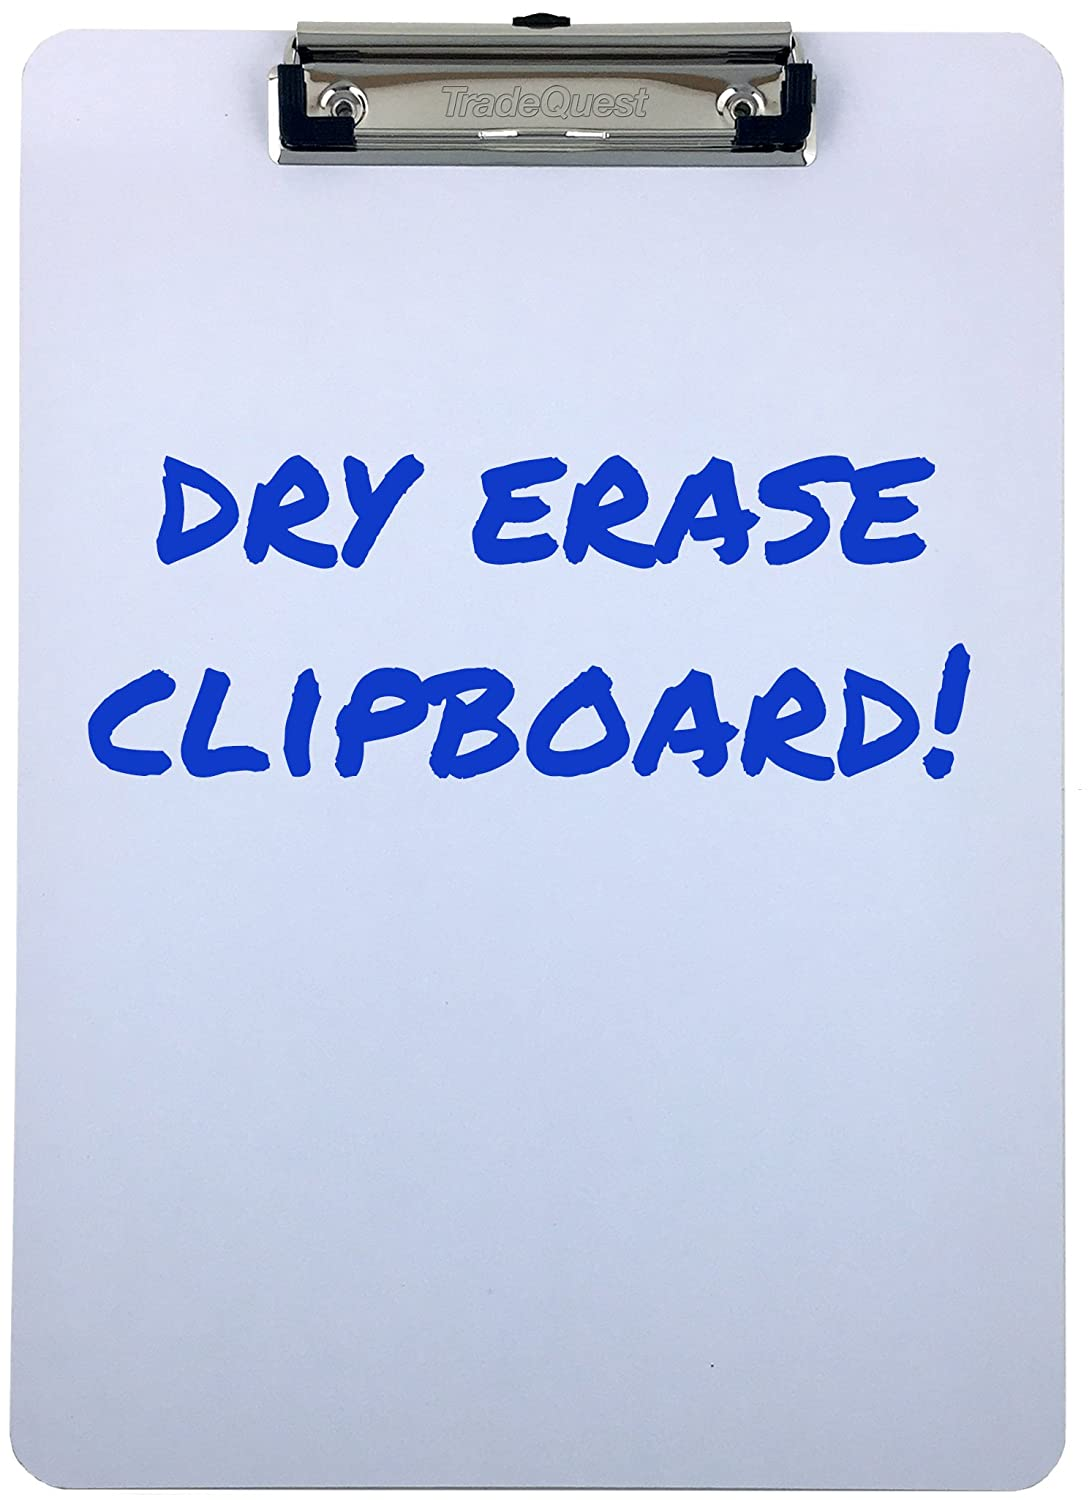 Clipboard Dry Erase Surface Low Profile Clip Whiteboard Single (Pack of 1) Trade Quest Global Corp HLLW1